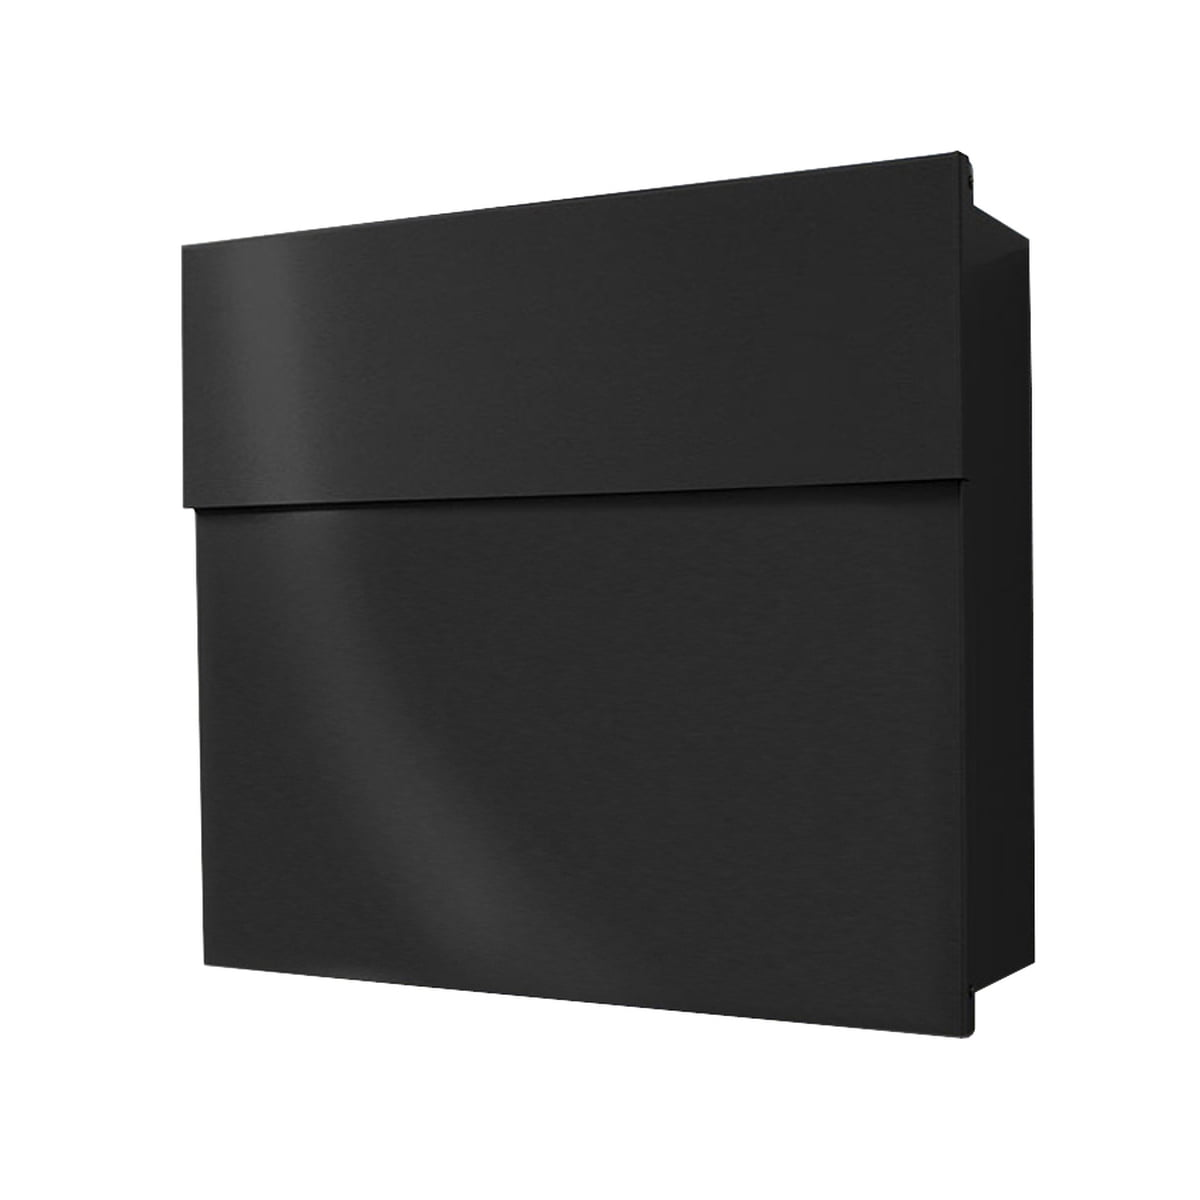 briefkasten letterman iv von radius design. Black Bedroom Furniture Sets. Home Design Ideas